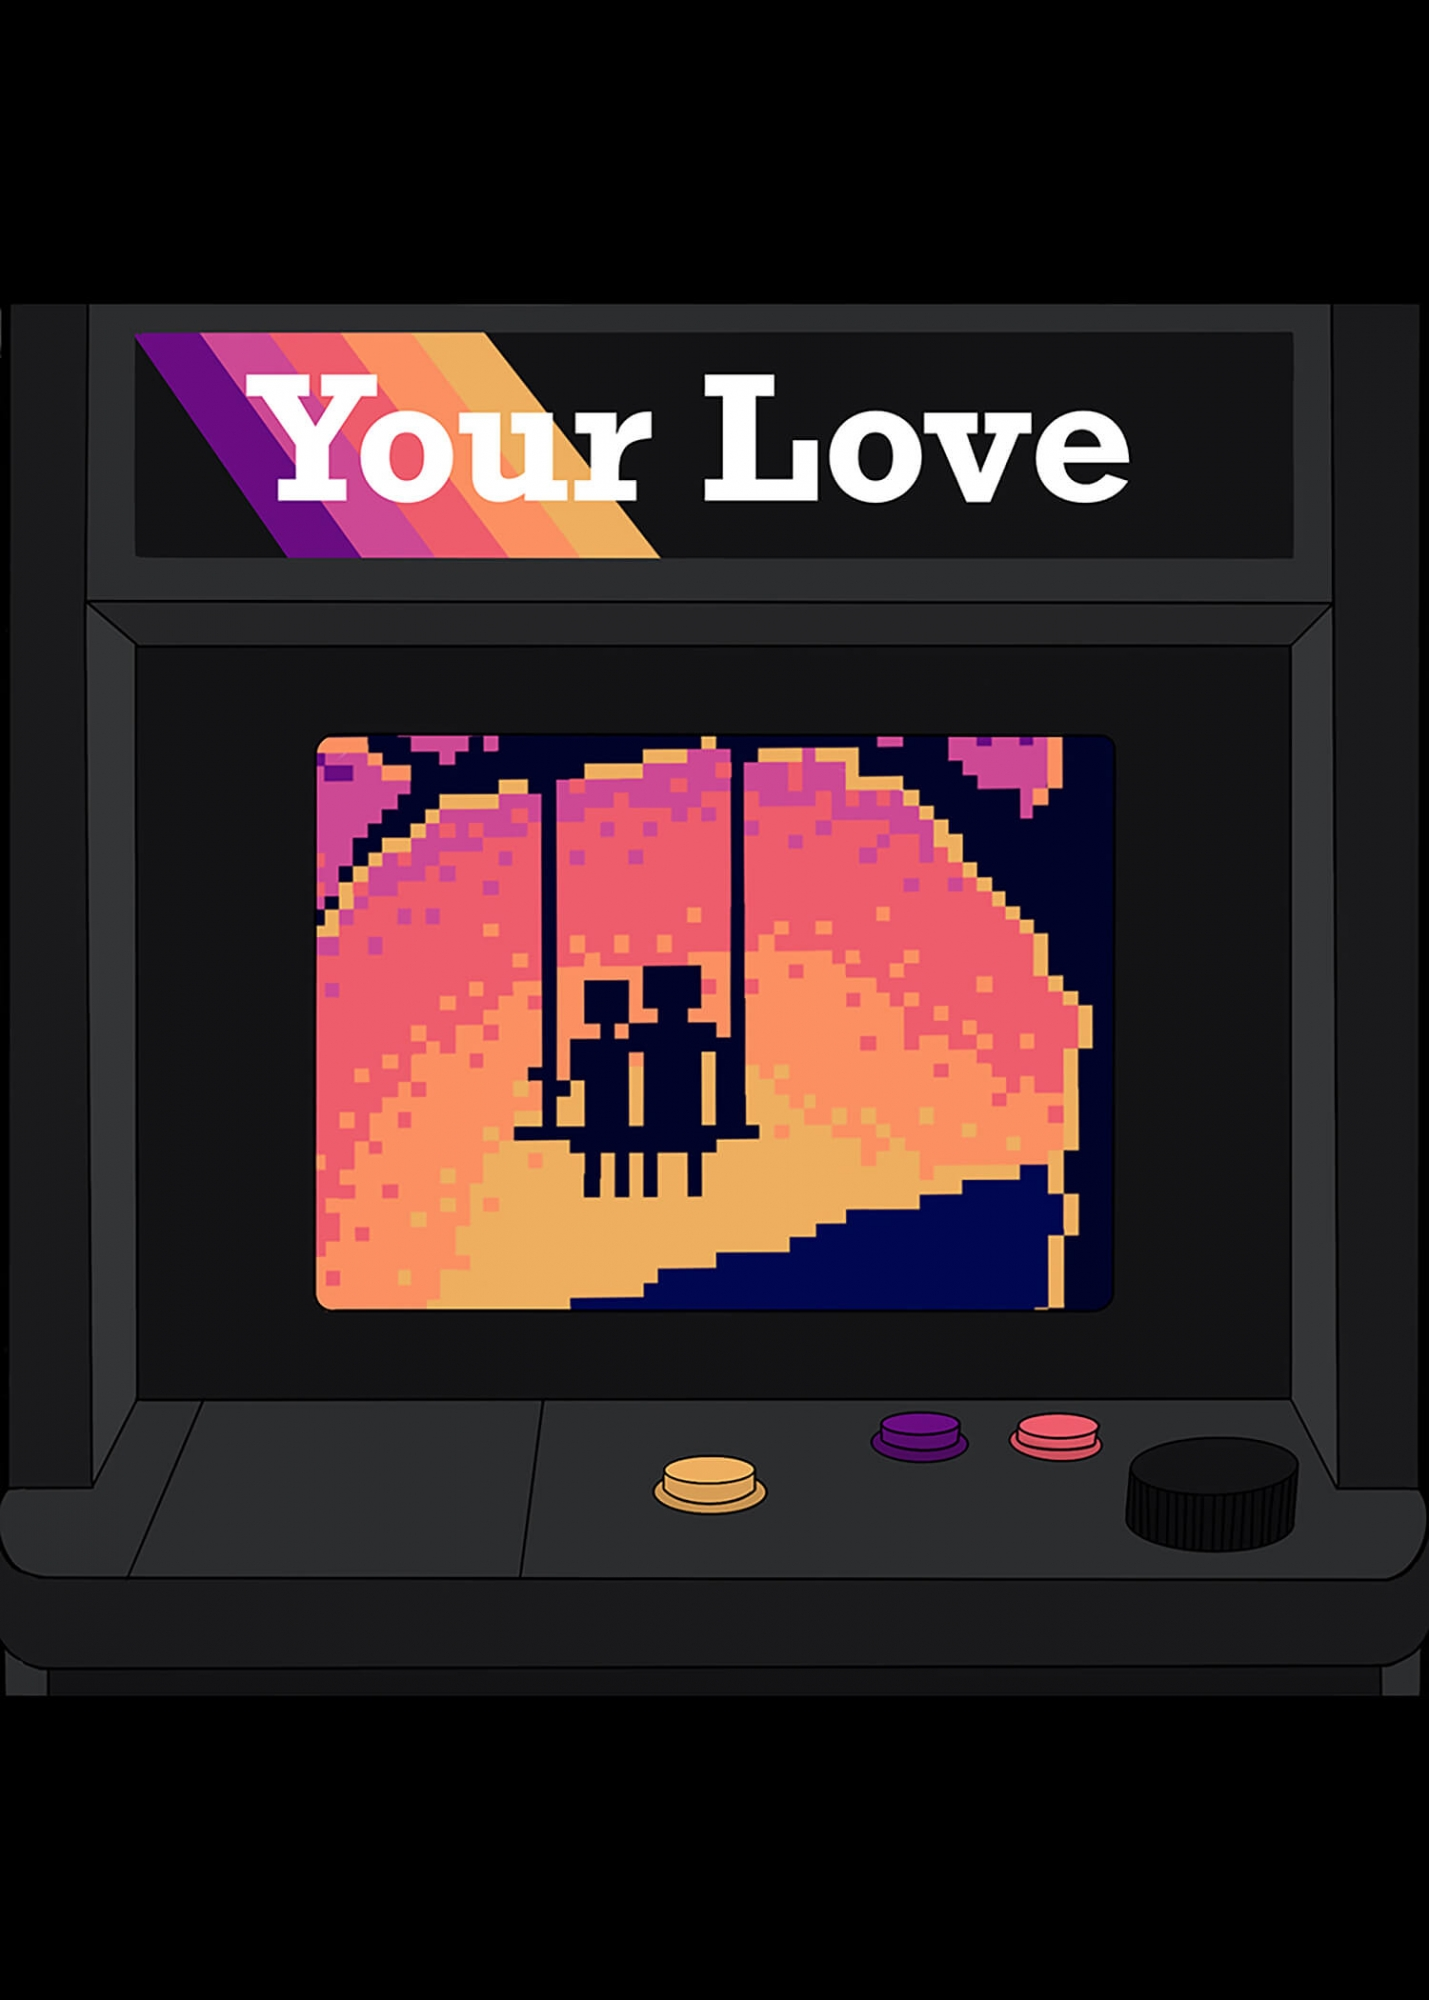 Pixel art of a couple looking at the sunset on a old style gaming console.